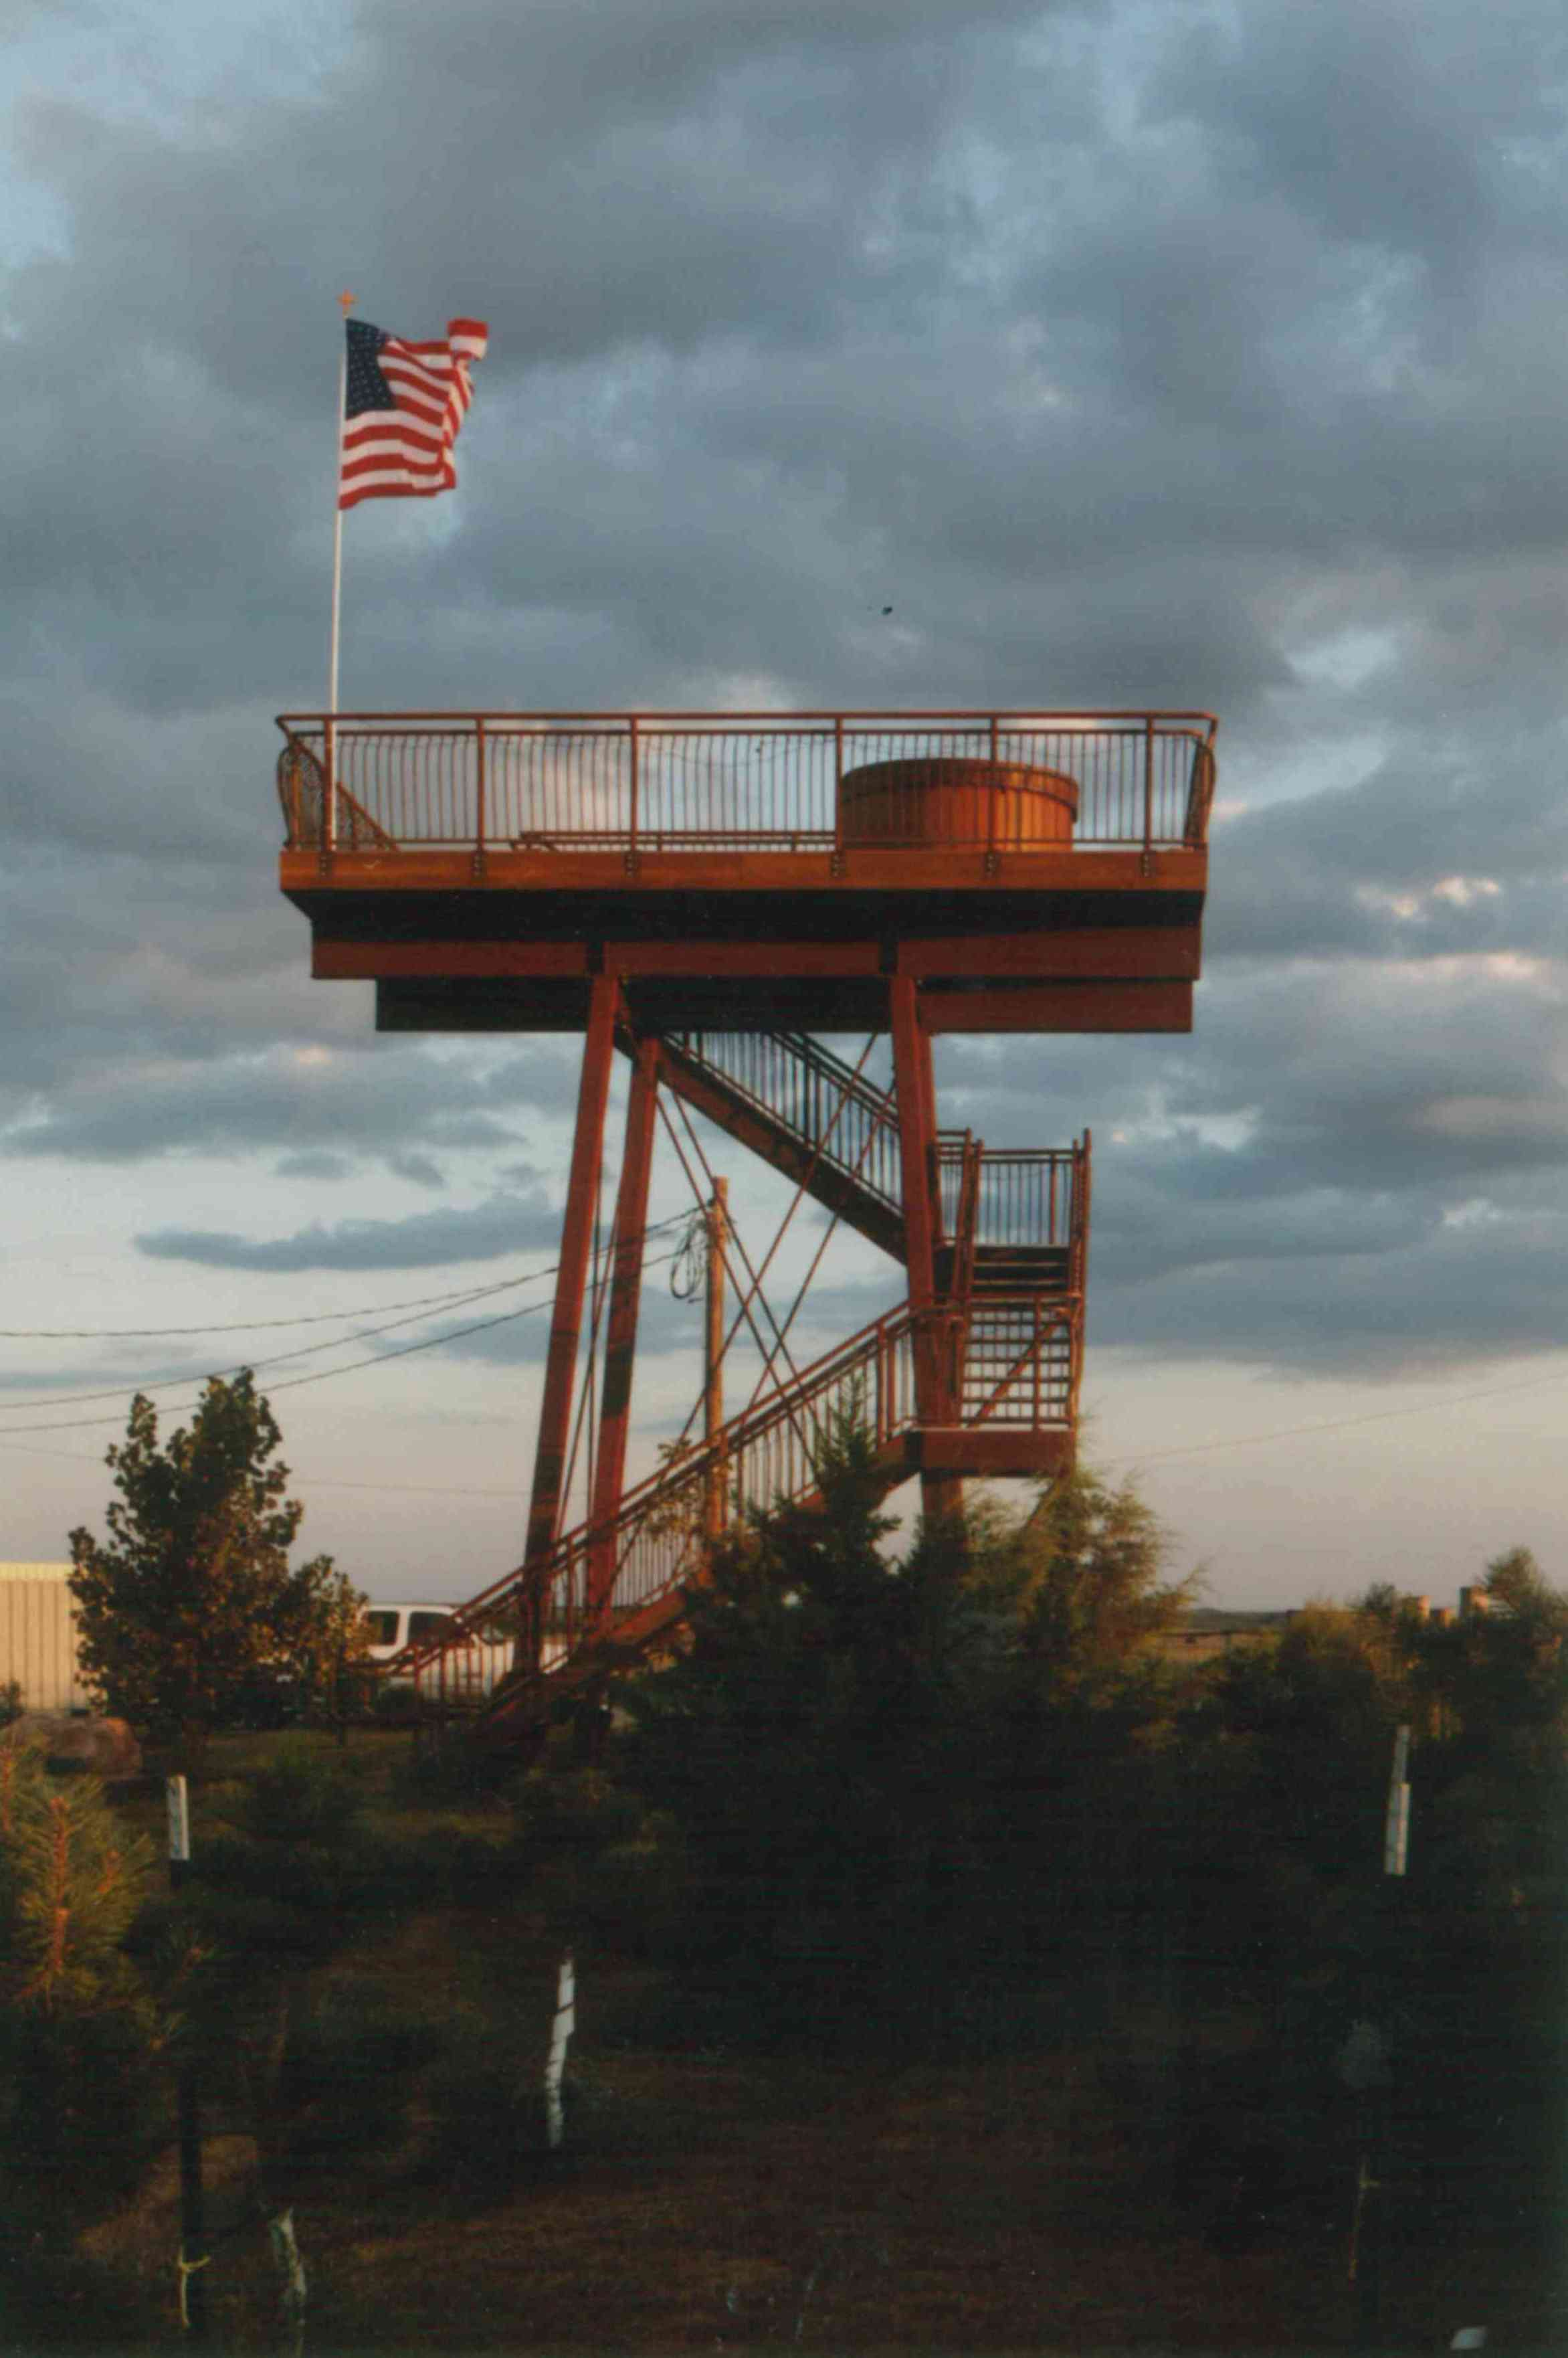 South Dakota Hot Tub Tower